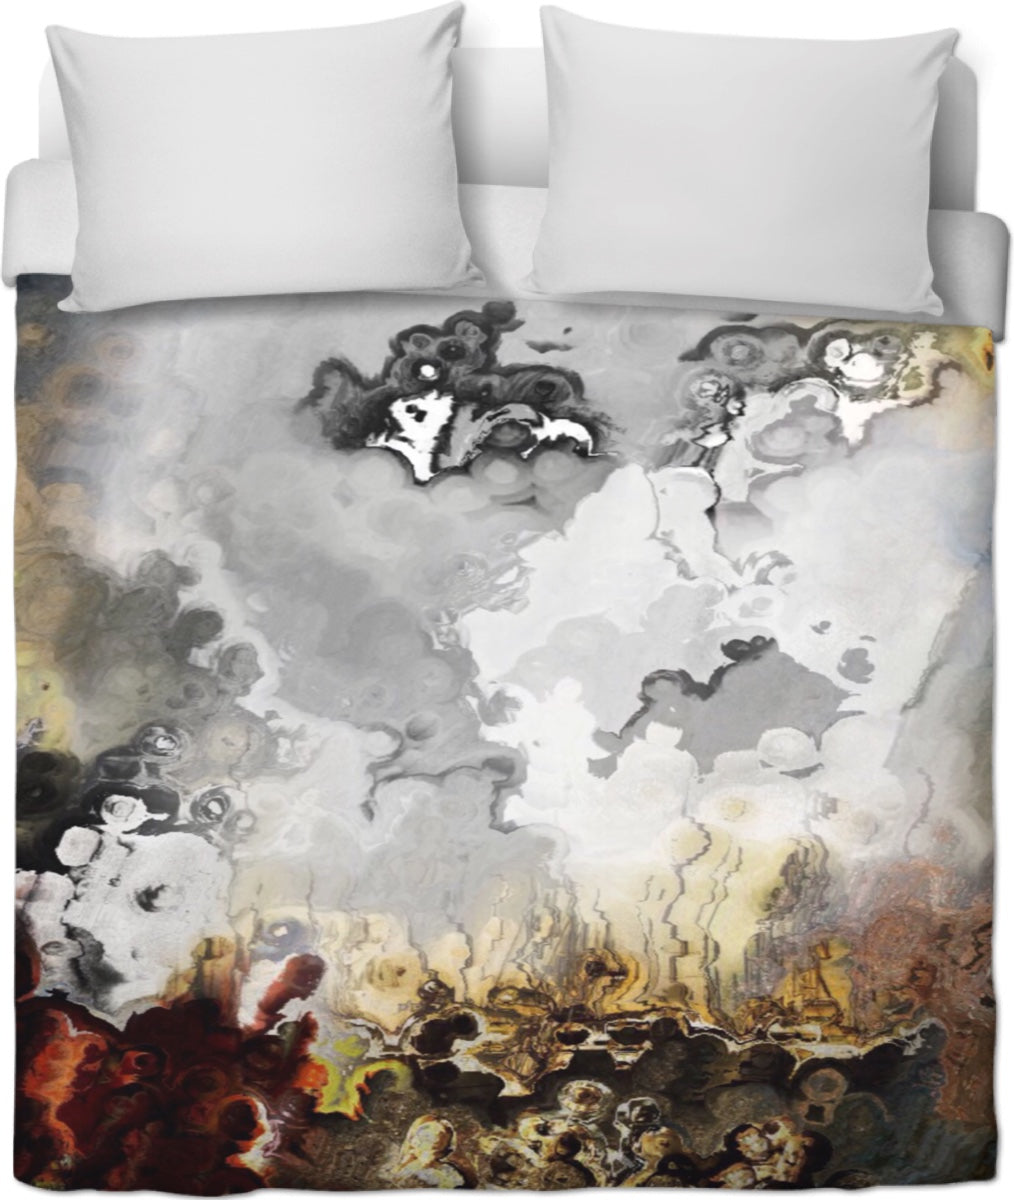 Duvet covers Abstract Painting